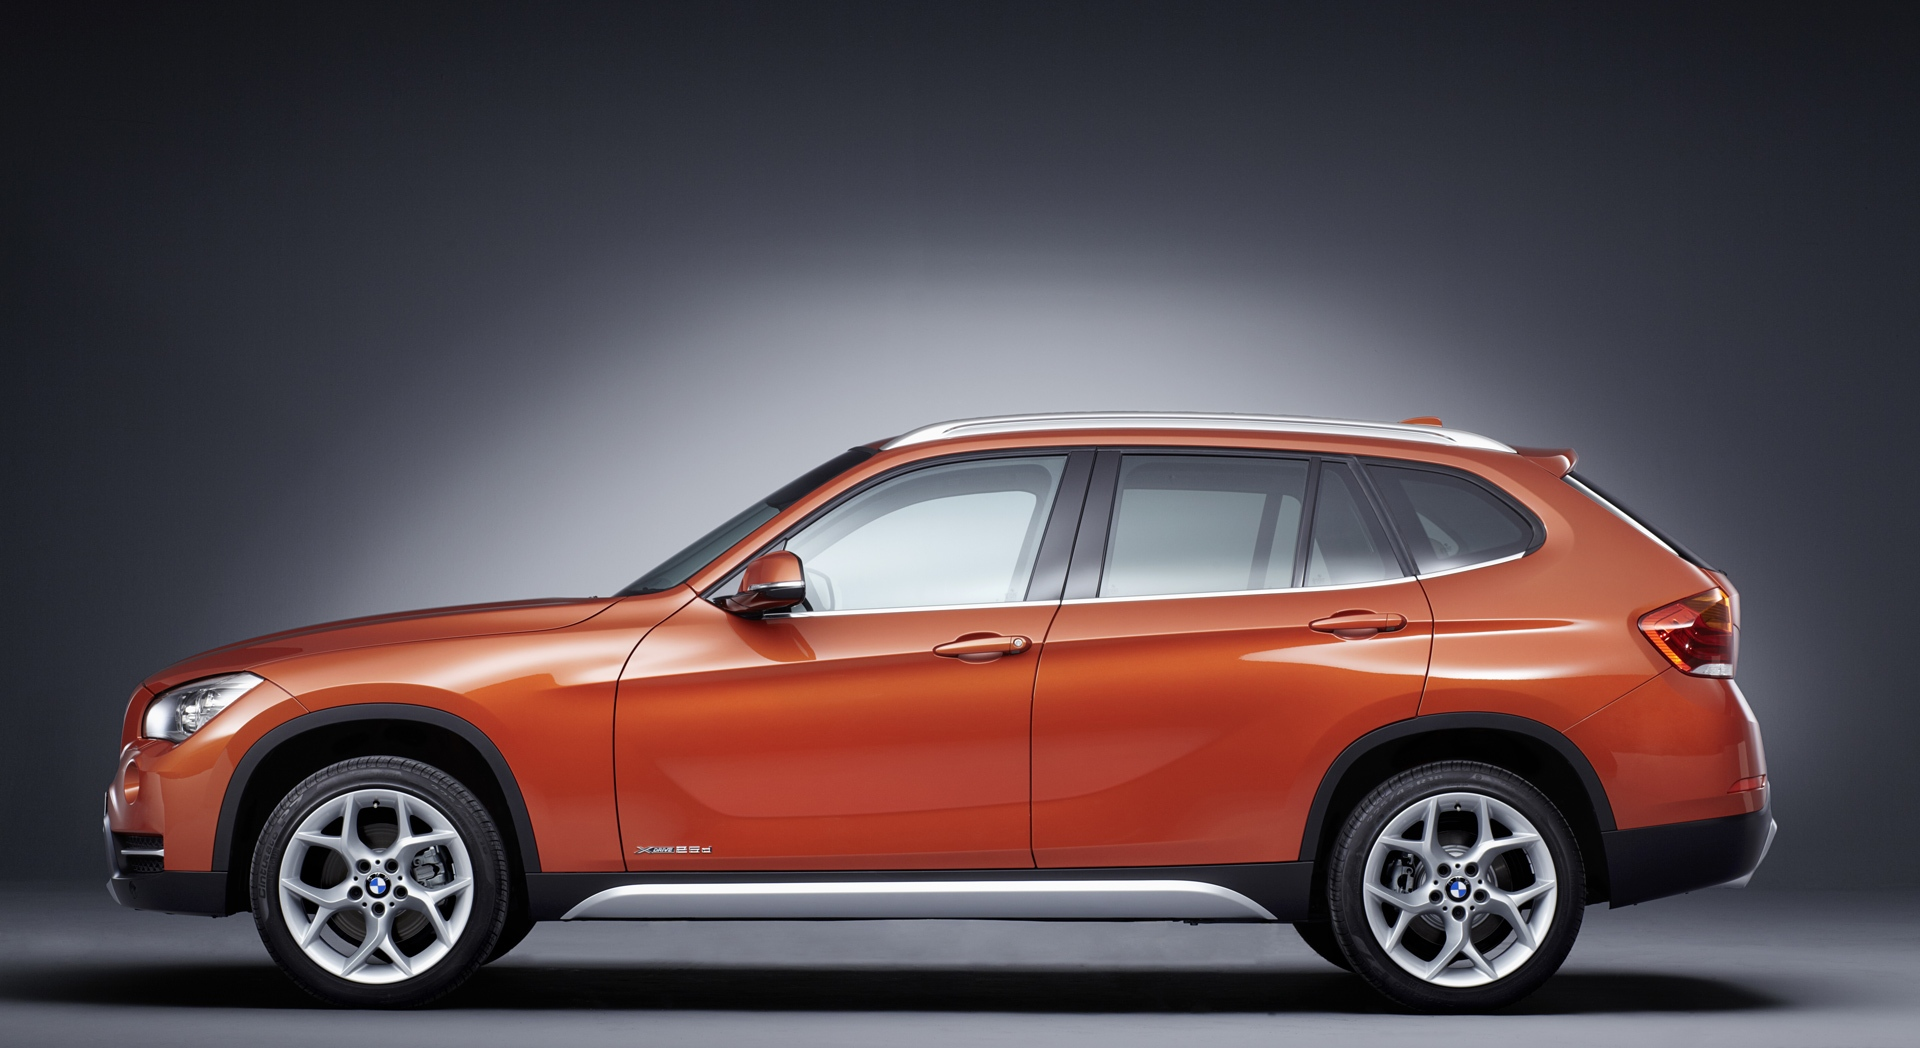 bmw x1 orange download